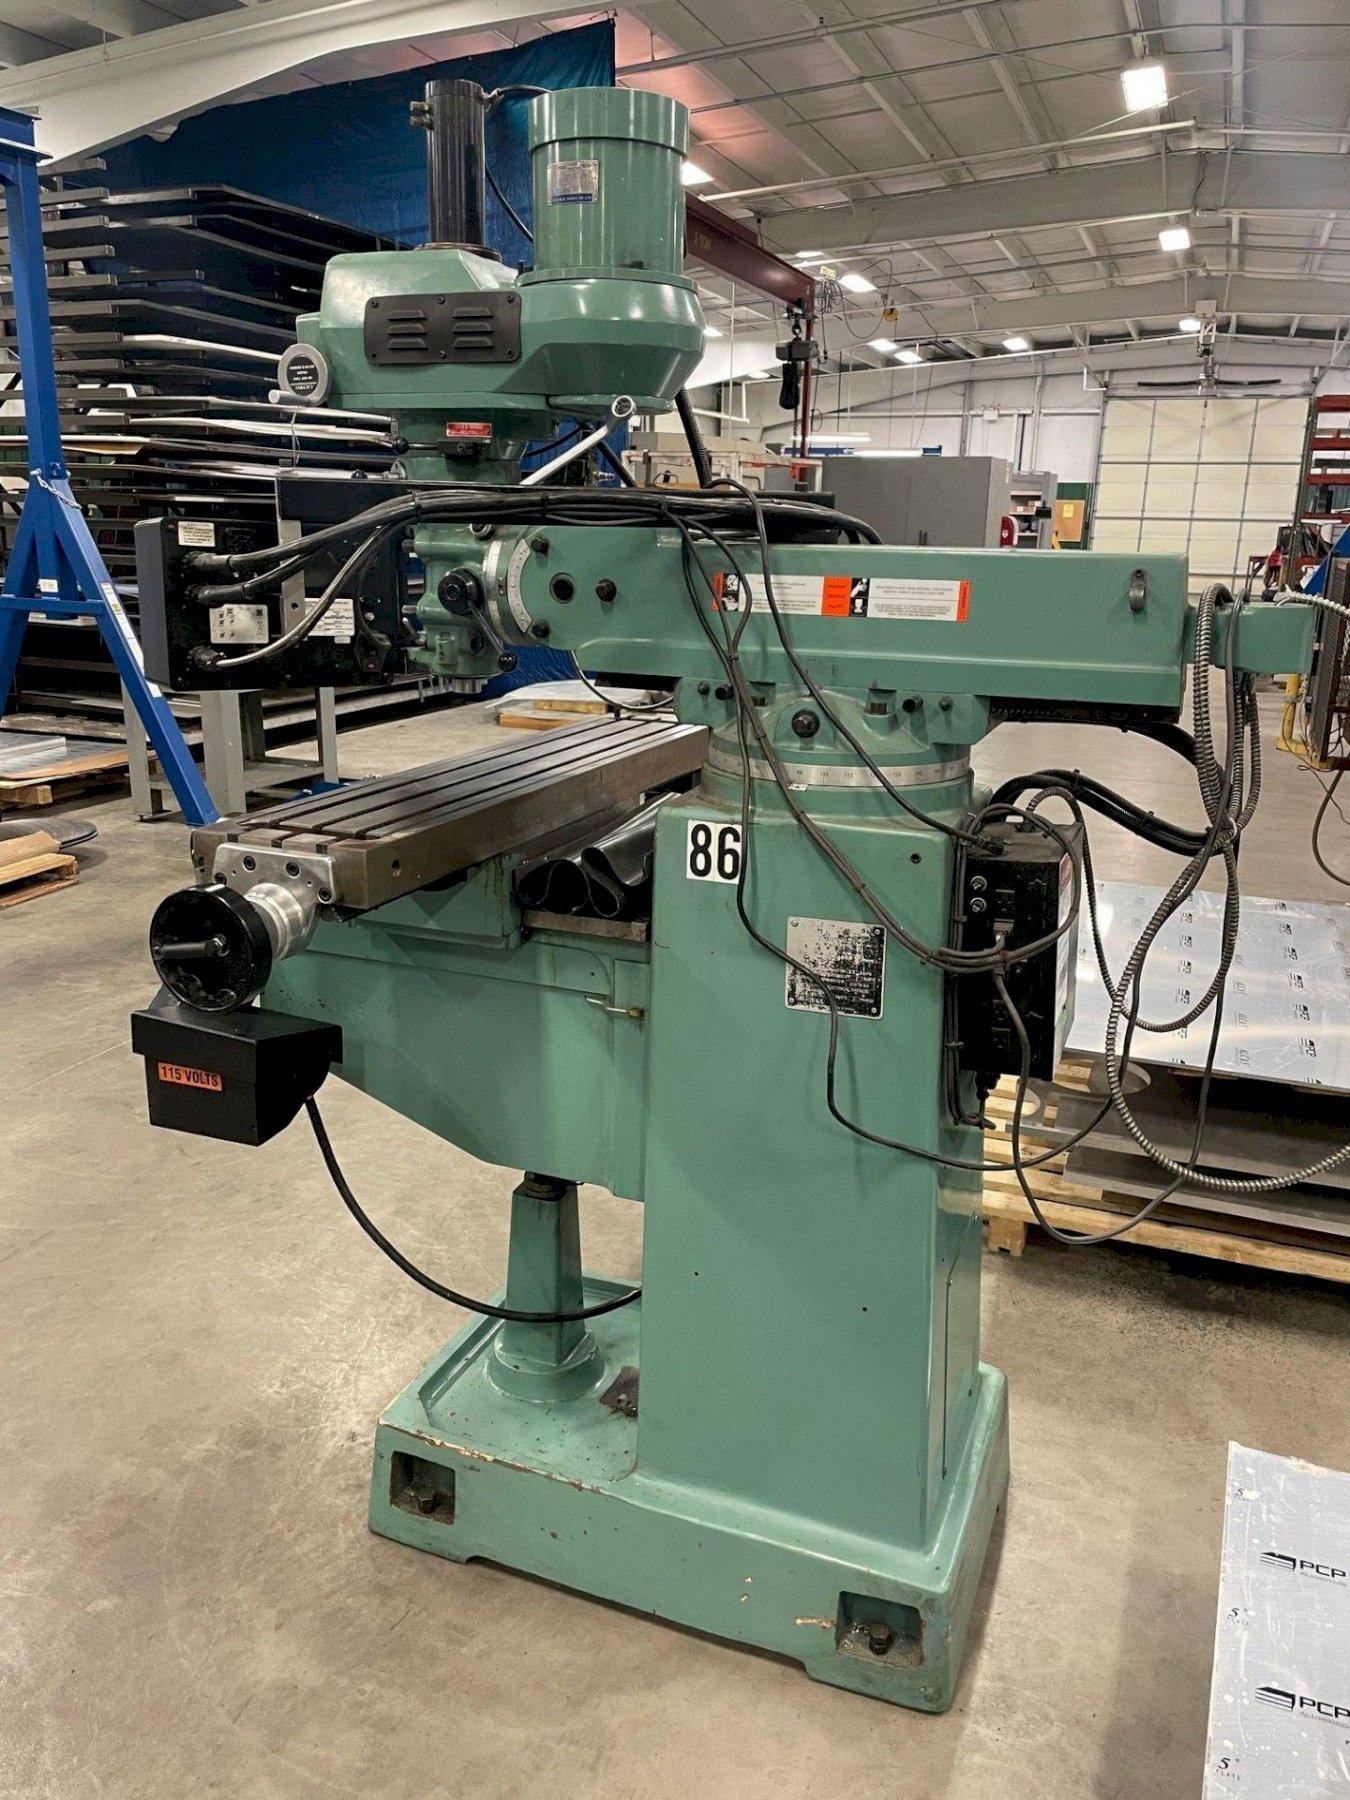 """SOUTHWEST INDUSTRIES TRAK K3 EMX 2-AXIS CNC VERTICAL KNEE MILL, SouthWest Industries ProtoTRAK EMX 2-Axis CNC Control, Quill Scale Feedback, 50"""" x 10"""" Table, 3 HP Spindle Motor, 4200 Spindle RPM, Power Drawbar, New 2013."""